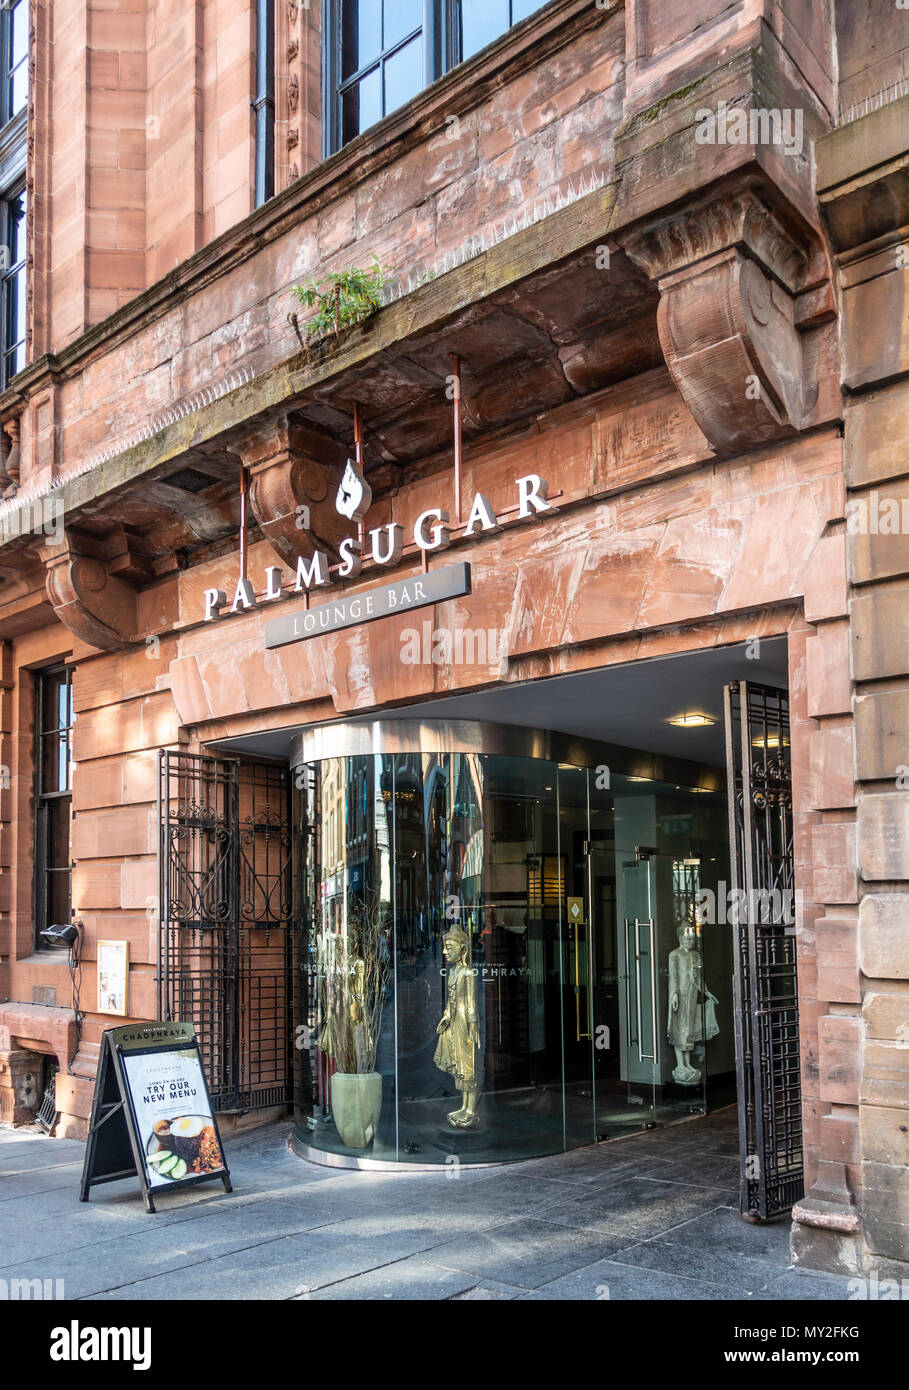 Entrance to the Palm Sugar Lounge Bar, located in the old Athaneum building in Nelson Mandela Square, Glasgow city centre, Scotland, UK. - Stock Image